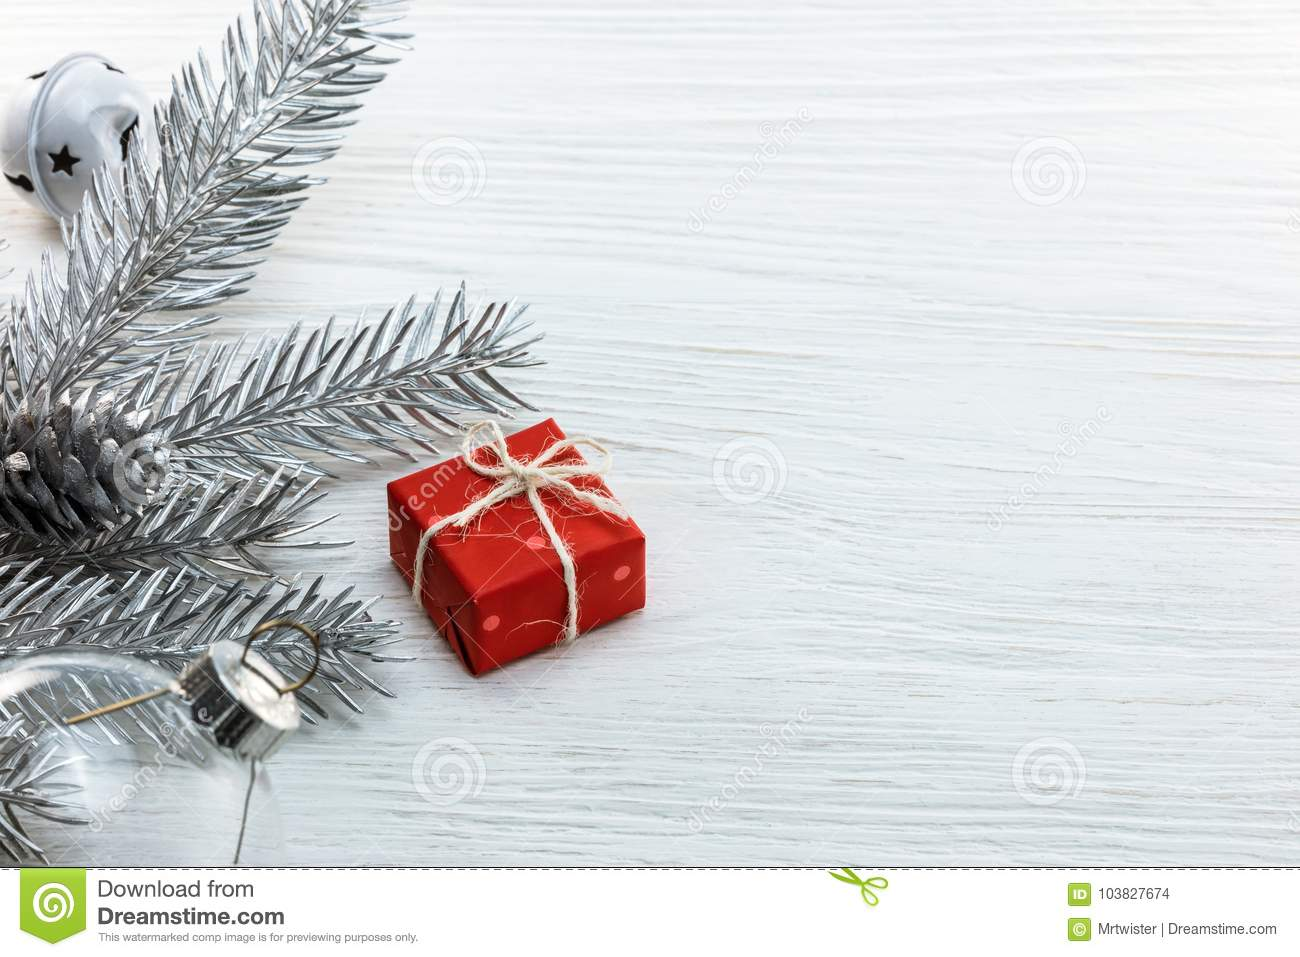 download silver christmas tree branch tree decorations and red gift box stock photo image